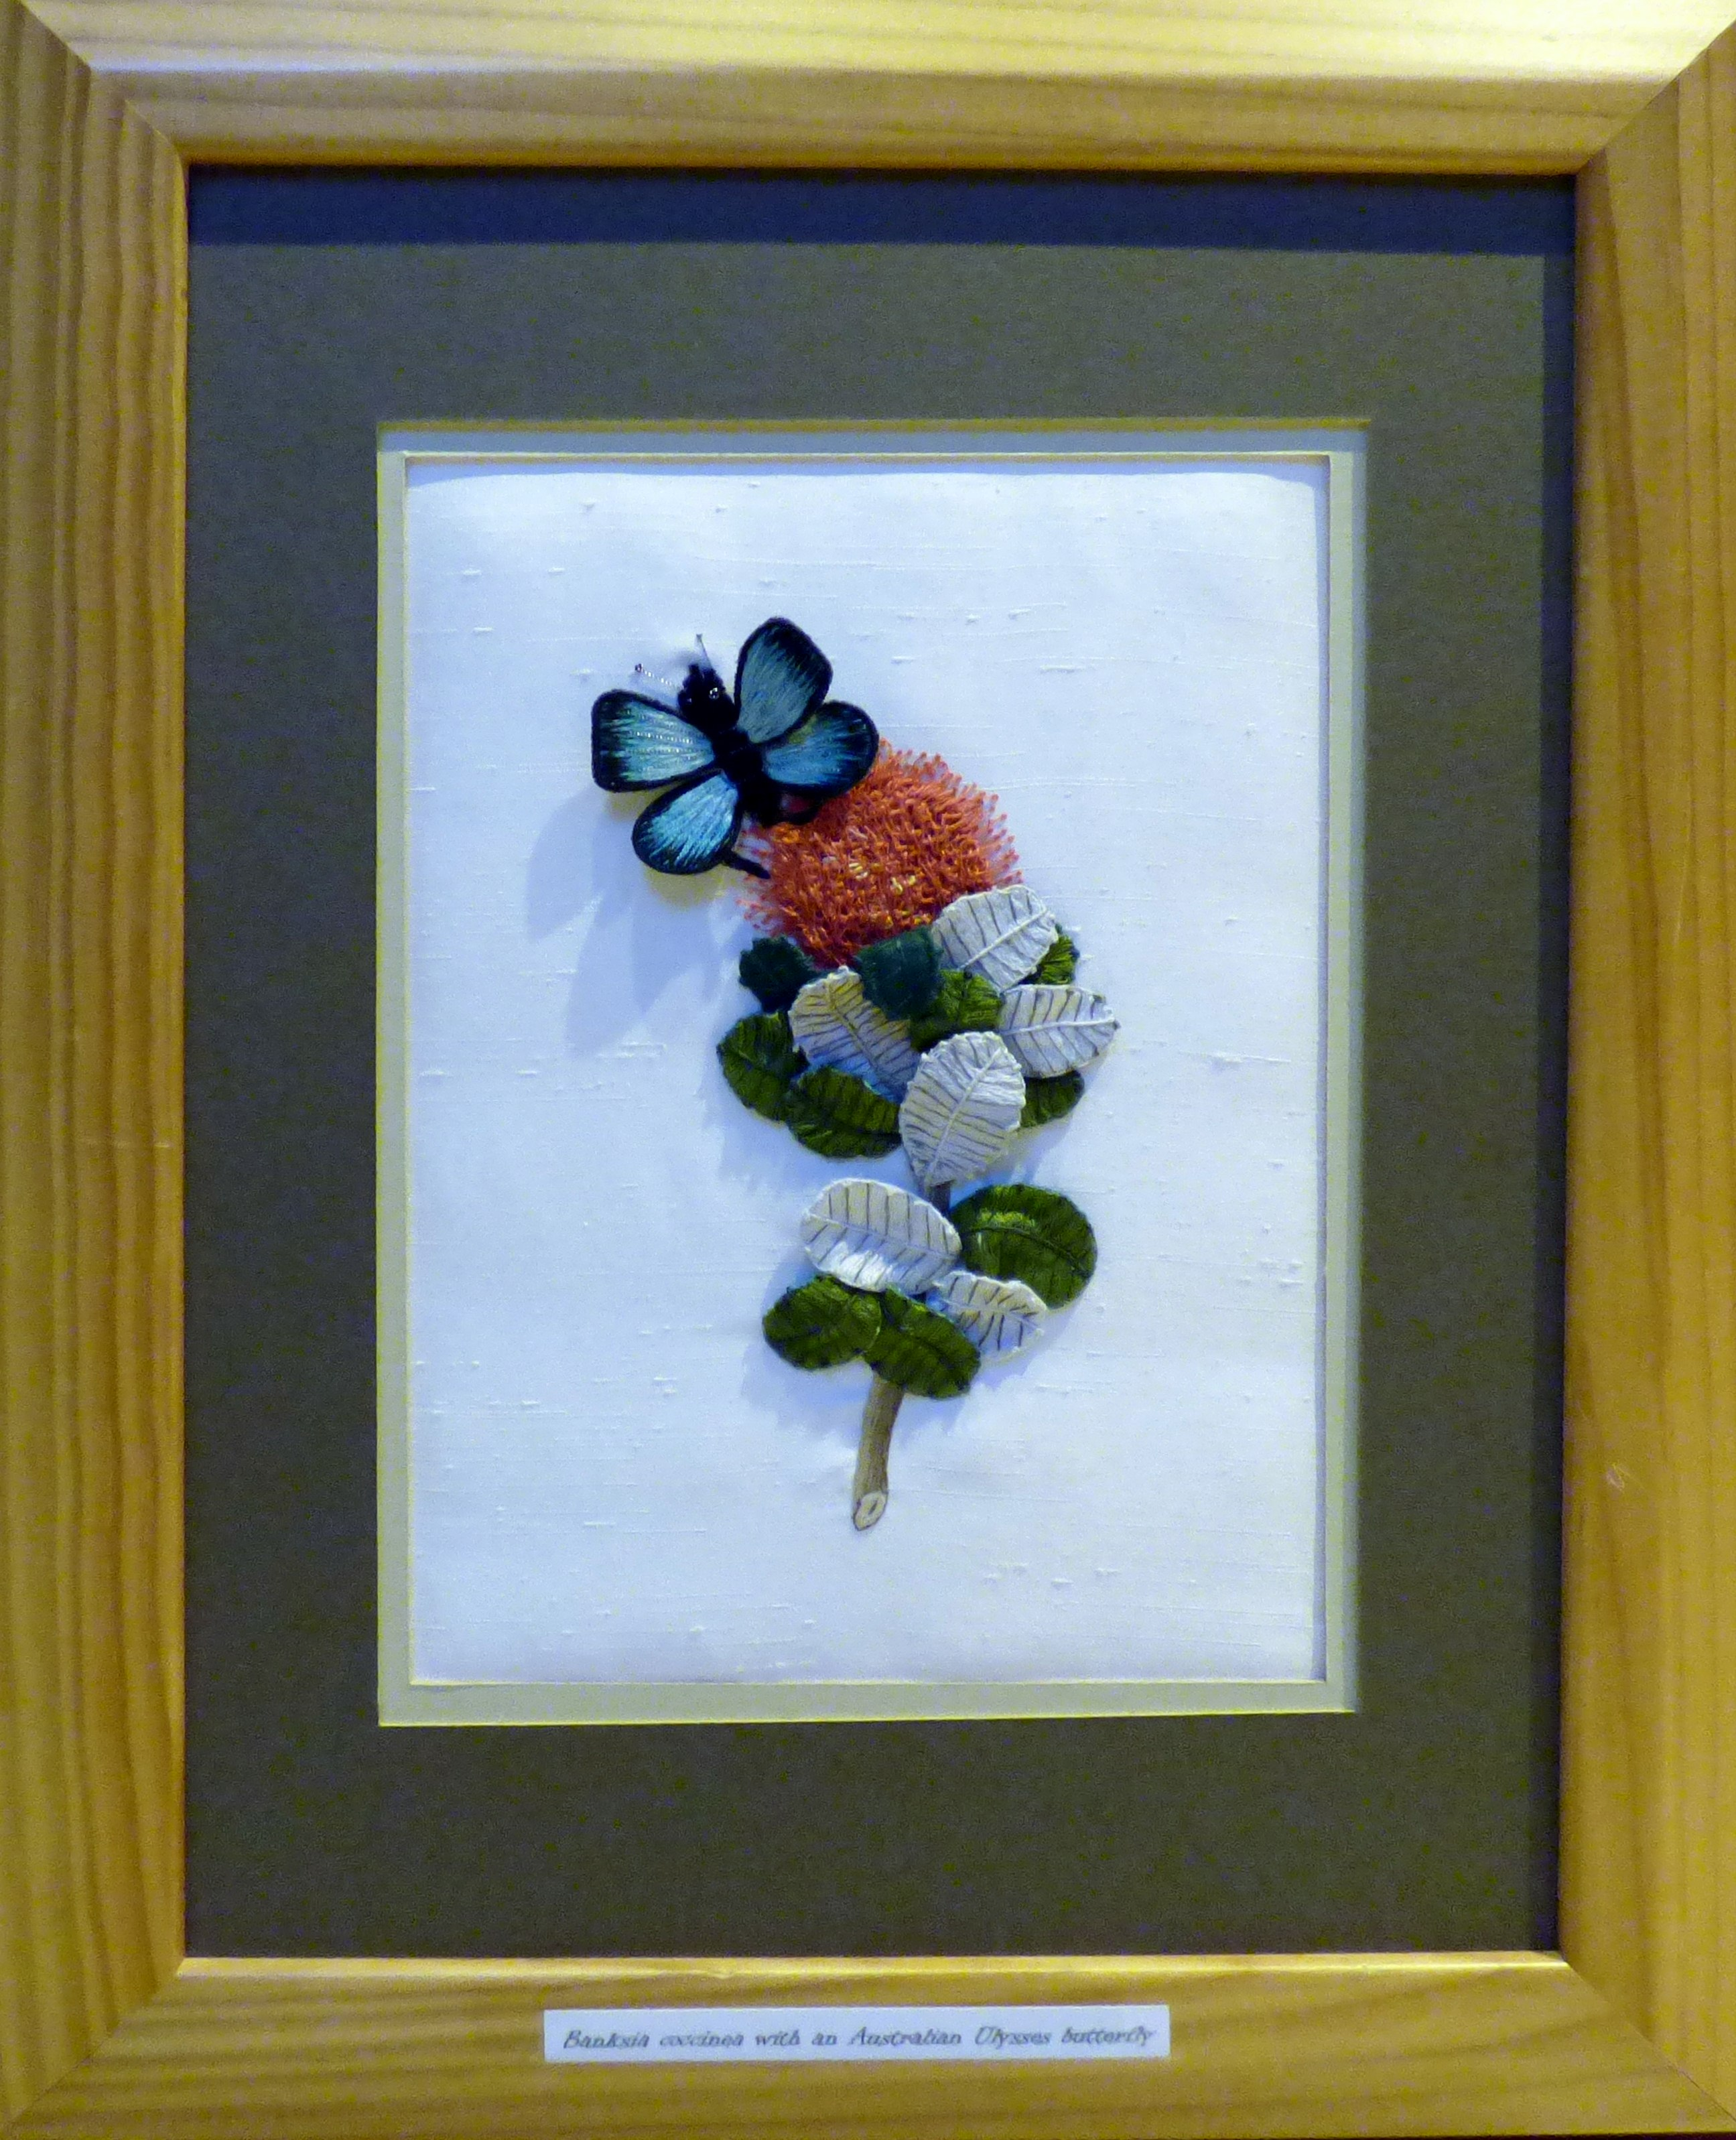 BANKSIA by Beryl Webster, stumpwork, Endeavour exhibition, Liverpool Cathedral, Sept 2018